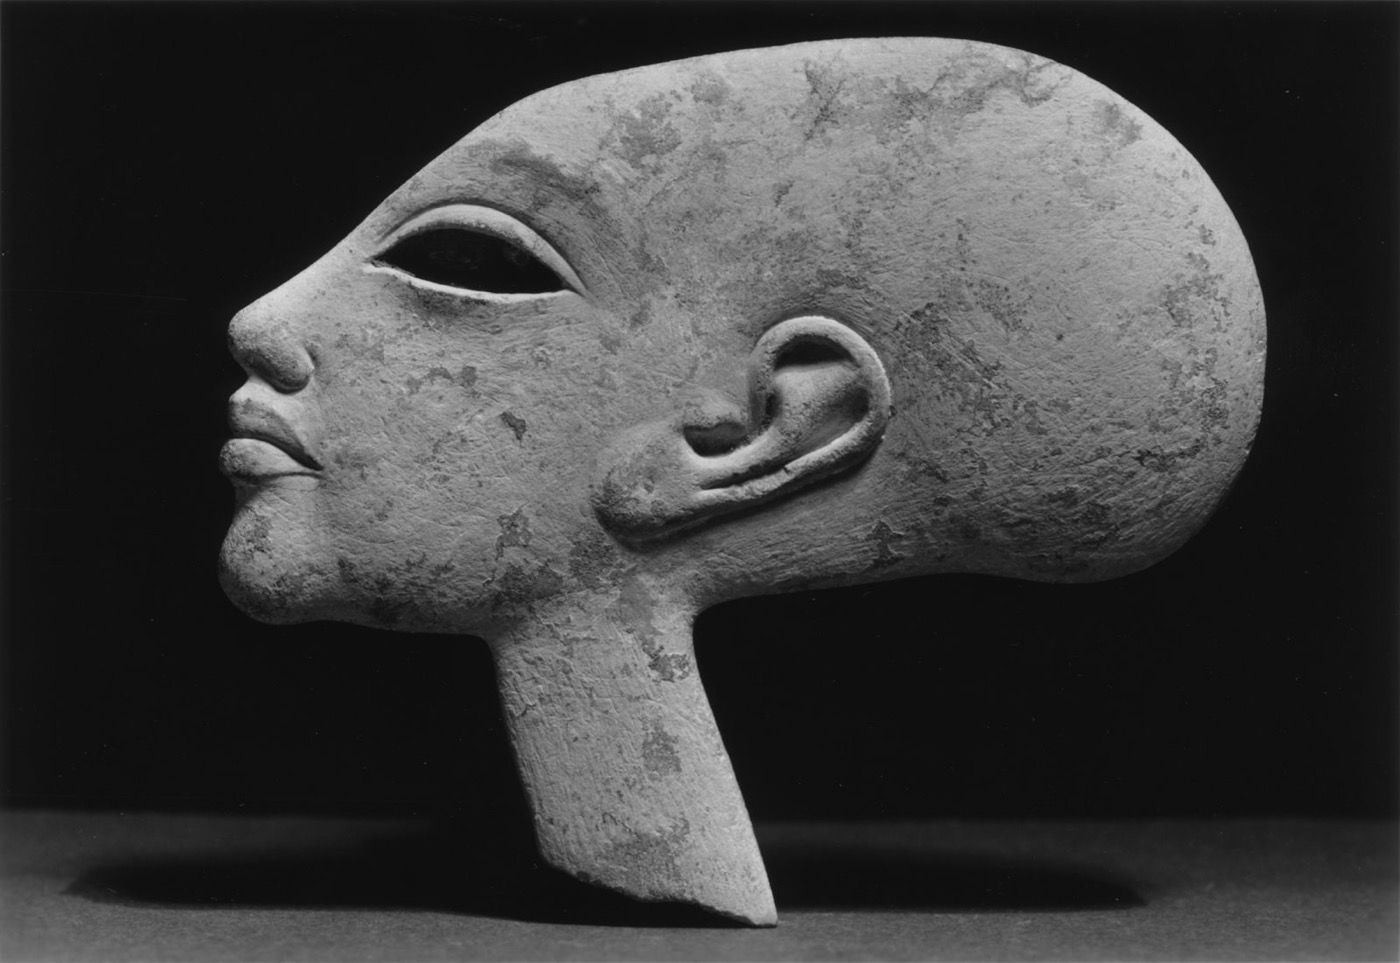 Pseudoarchaeology and the Racism Behind Ancient Aliens